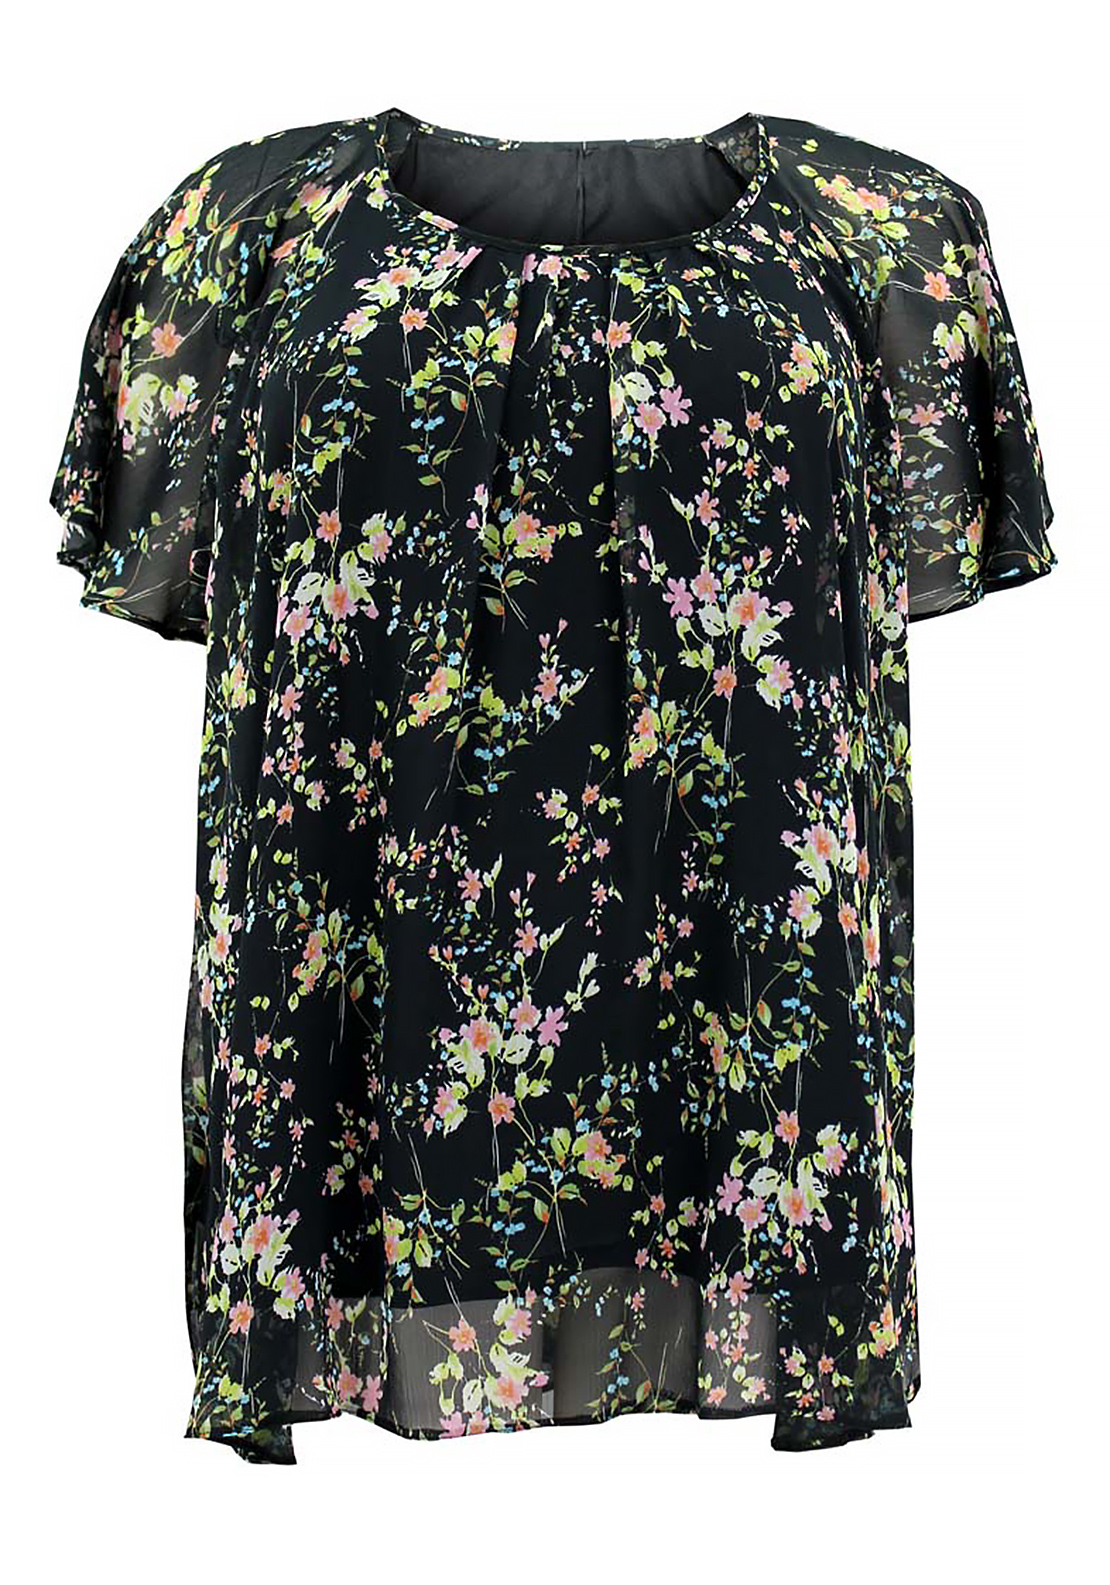 Lovedrobe Floral Print Chiffon Tunic Top, Black